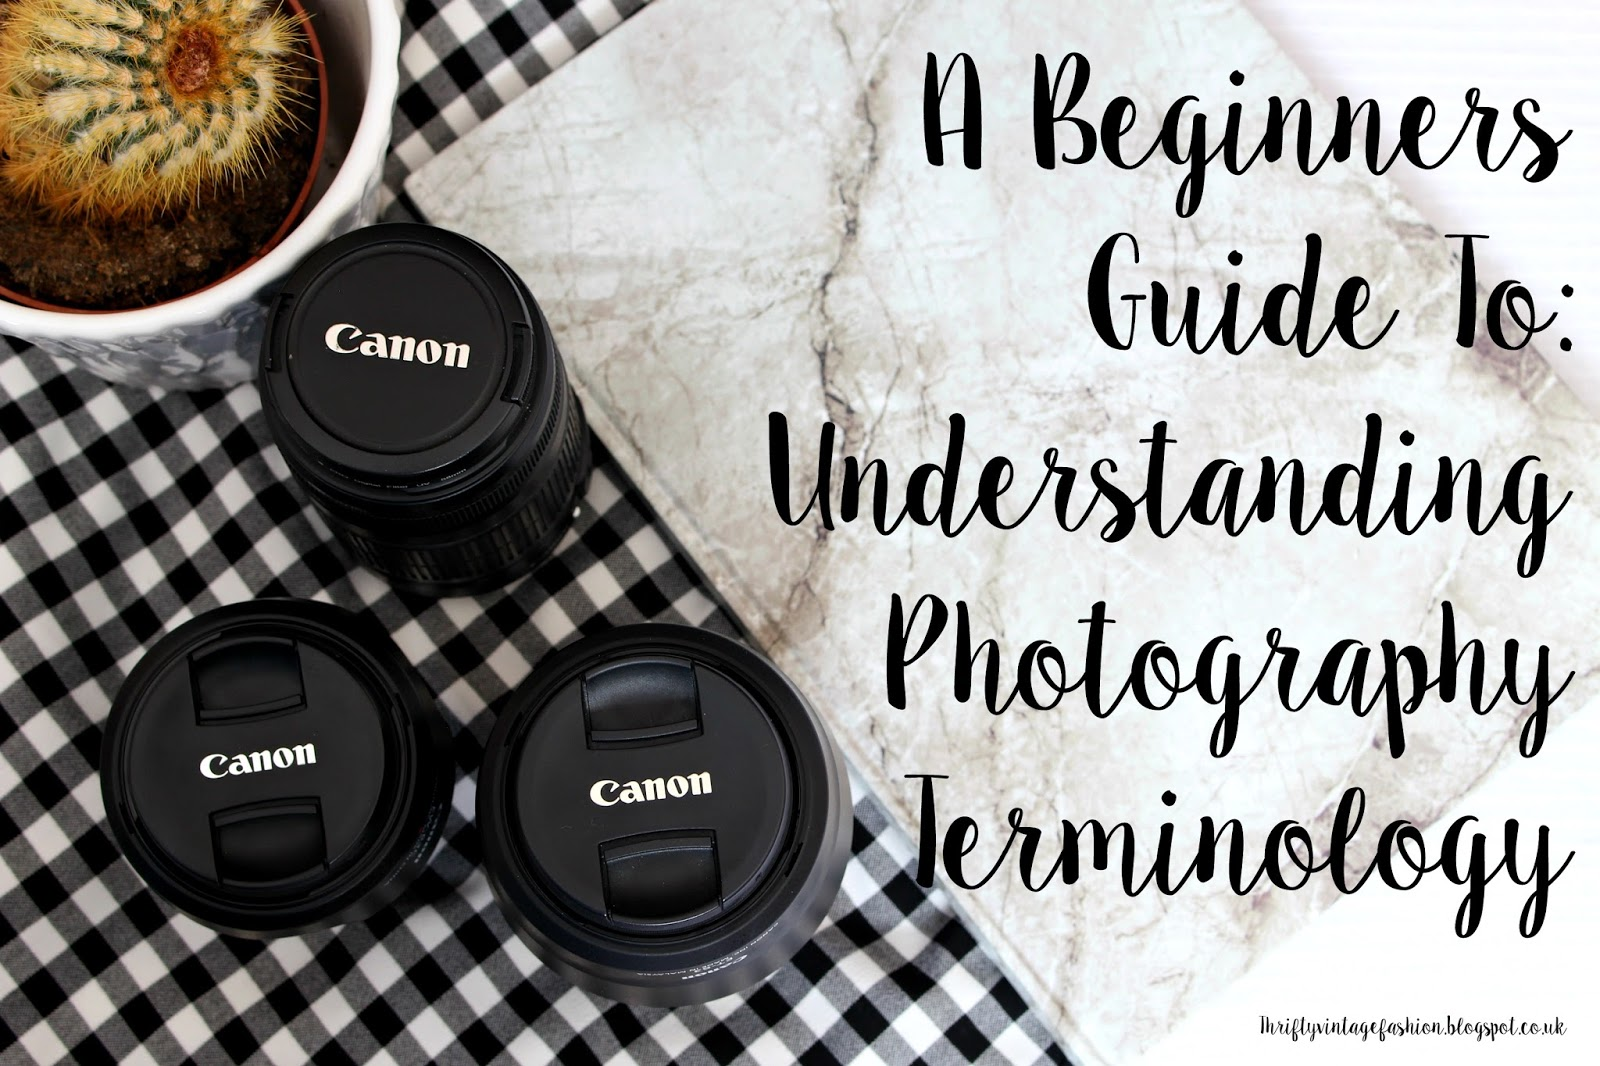 A Beginners Guide To: Understanding Photography Terminology Help advice tips tricks photos blogger blogging